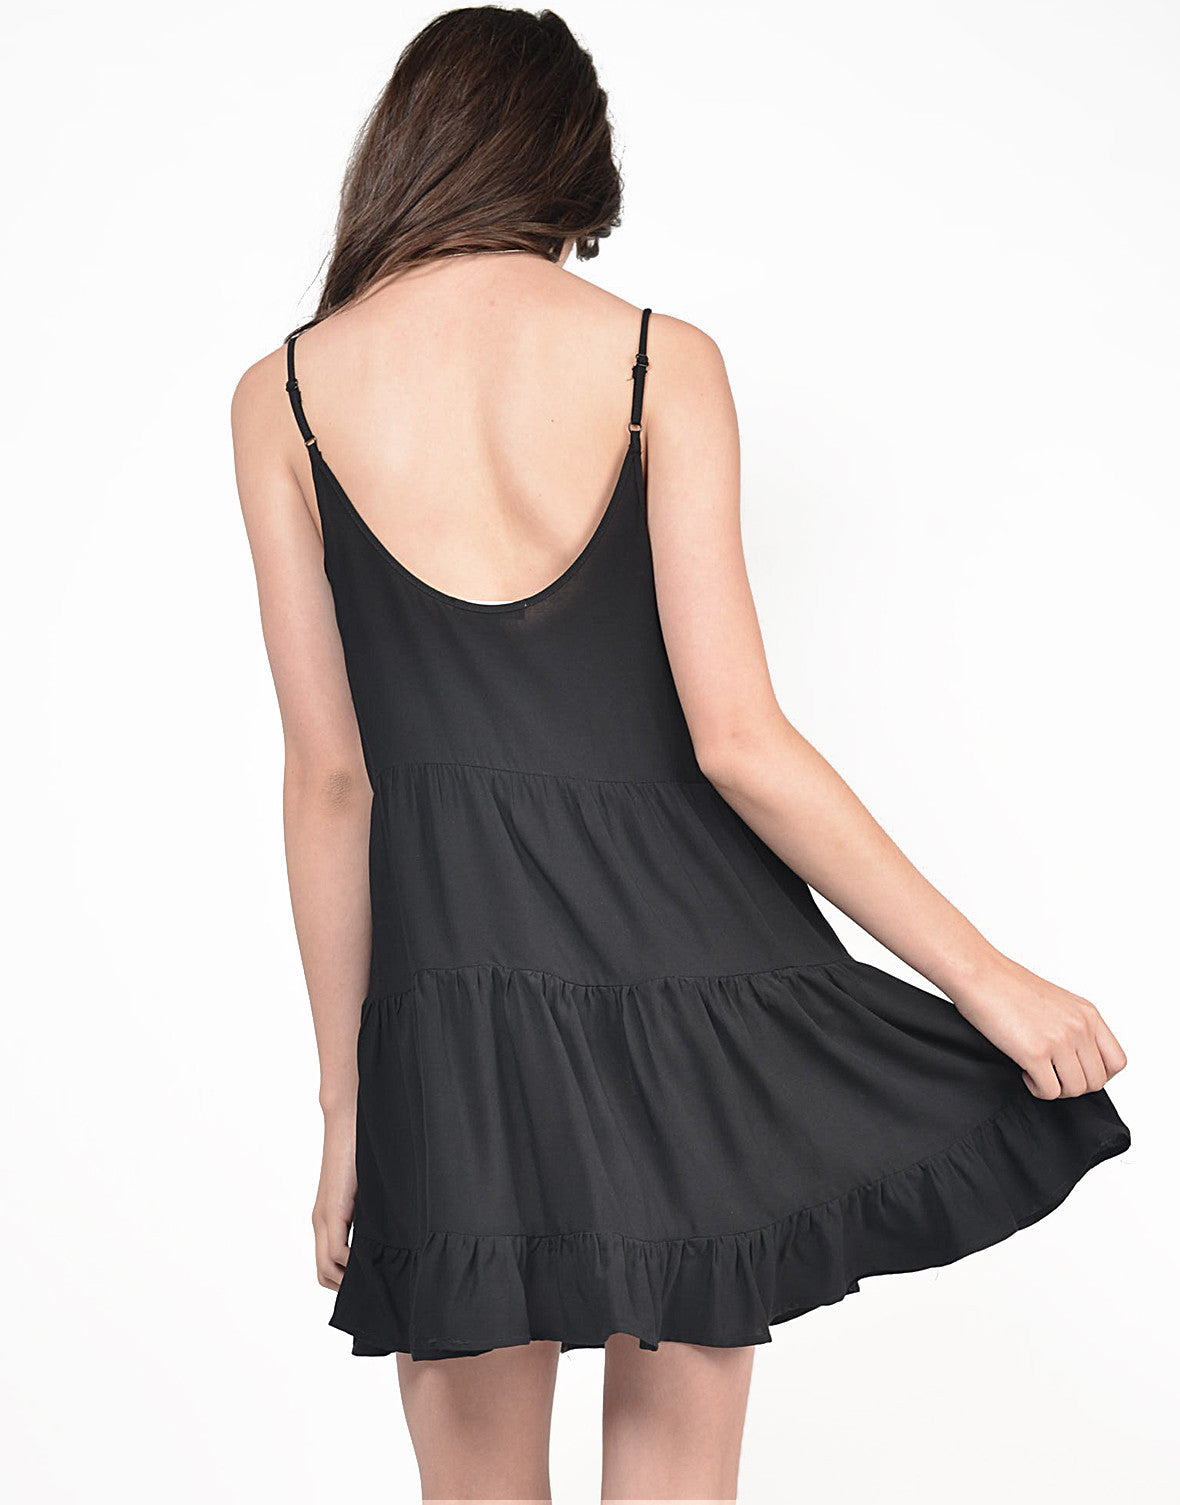 Back View of Lightweight Tiered Babydoll dress